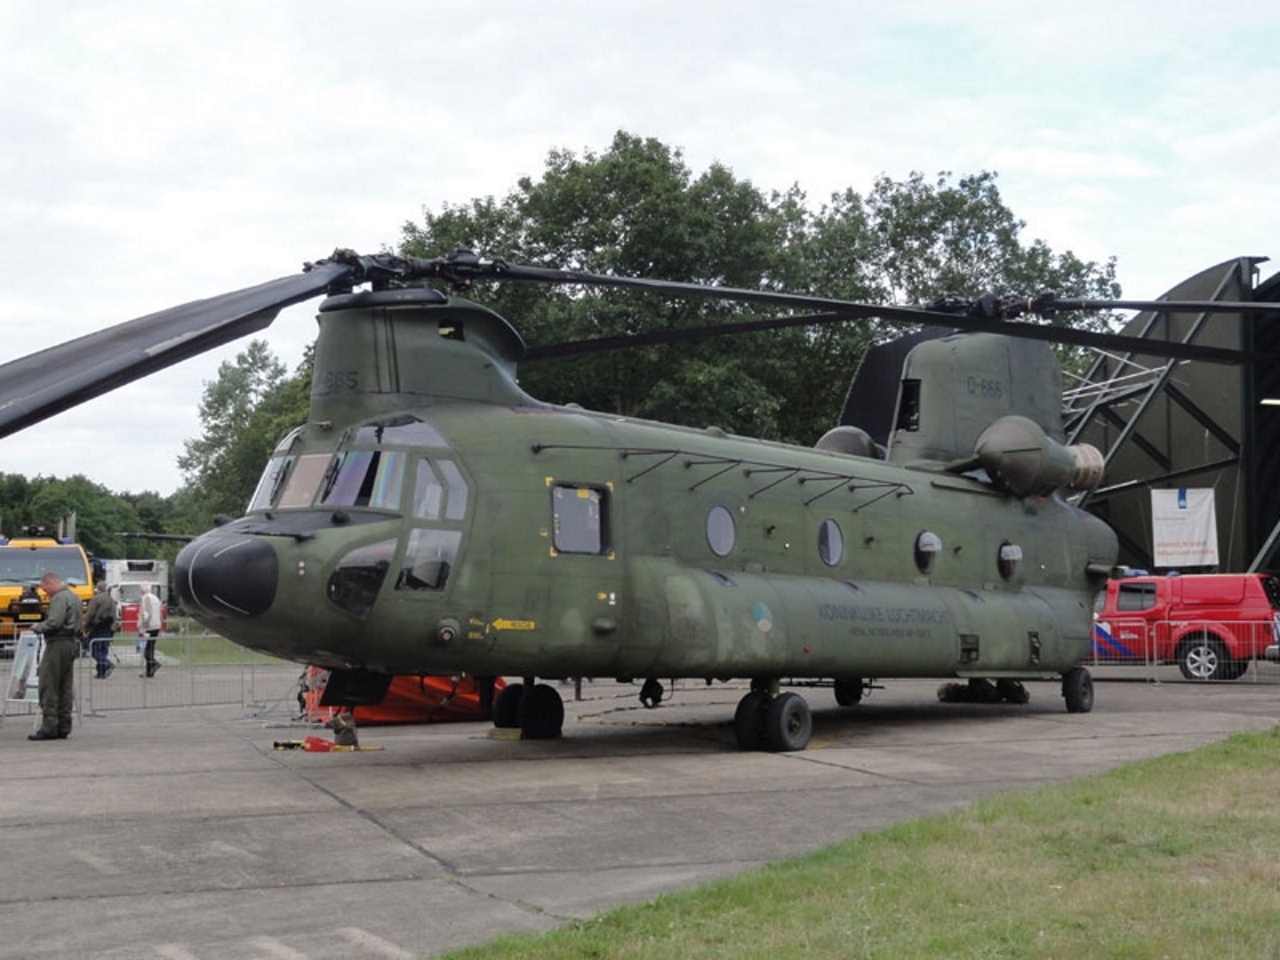 A Boeing CH-47D Chinook